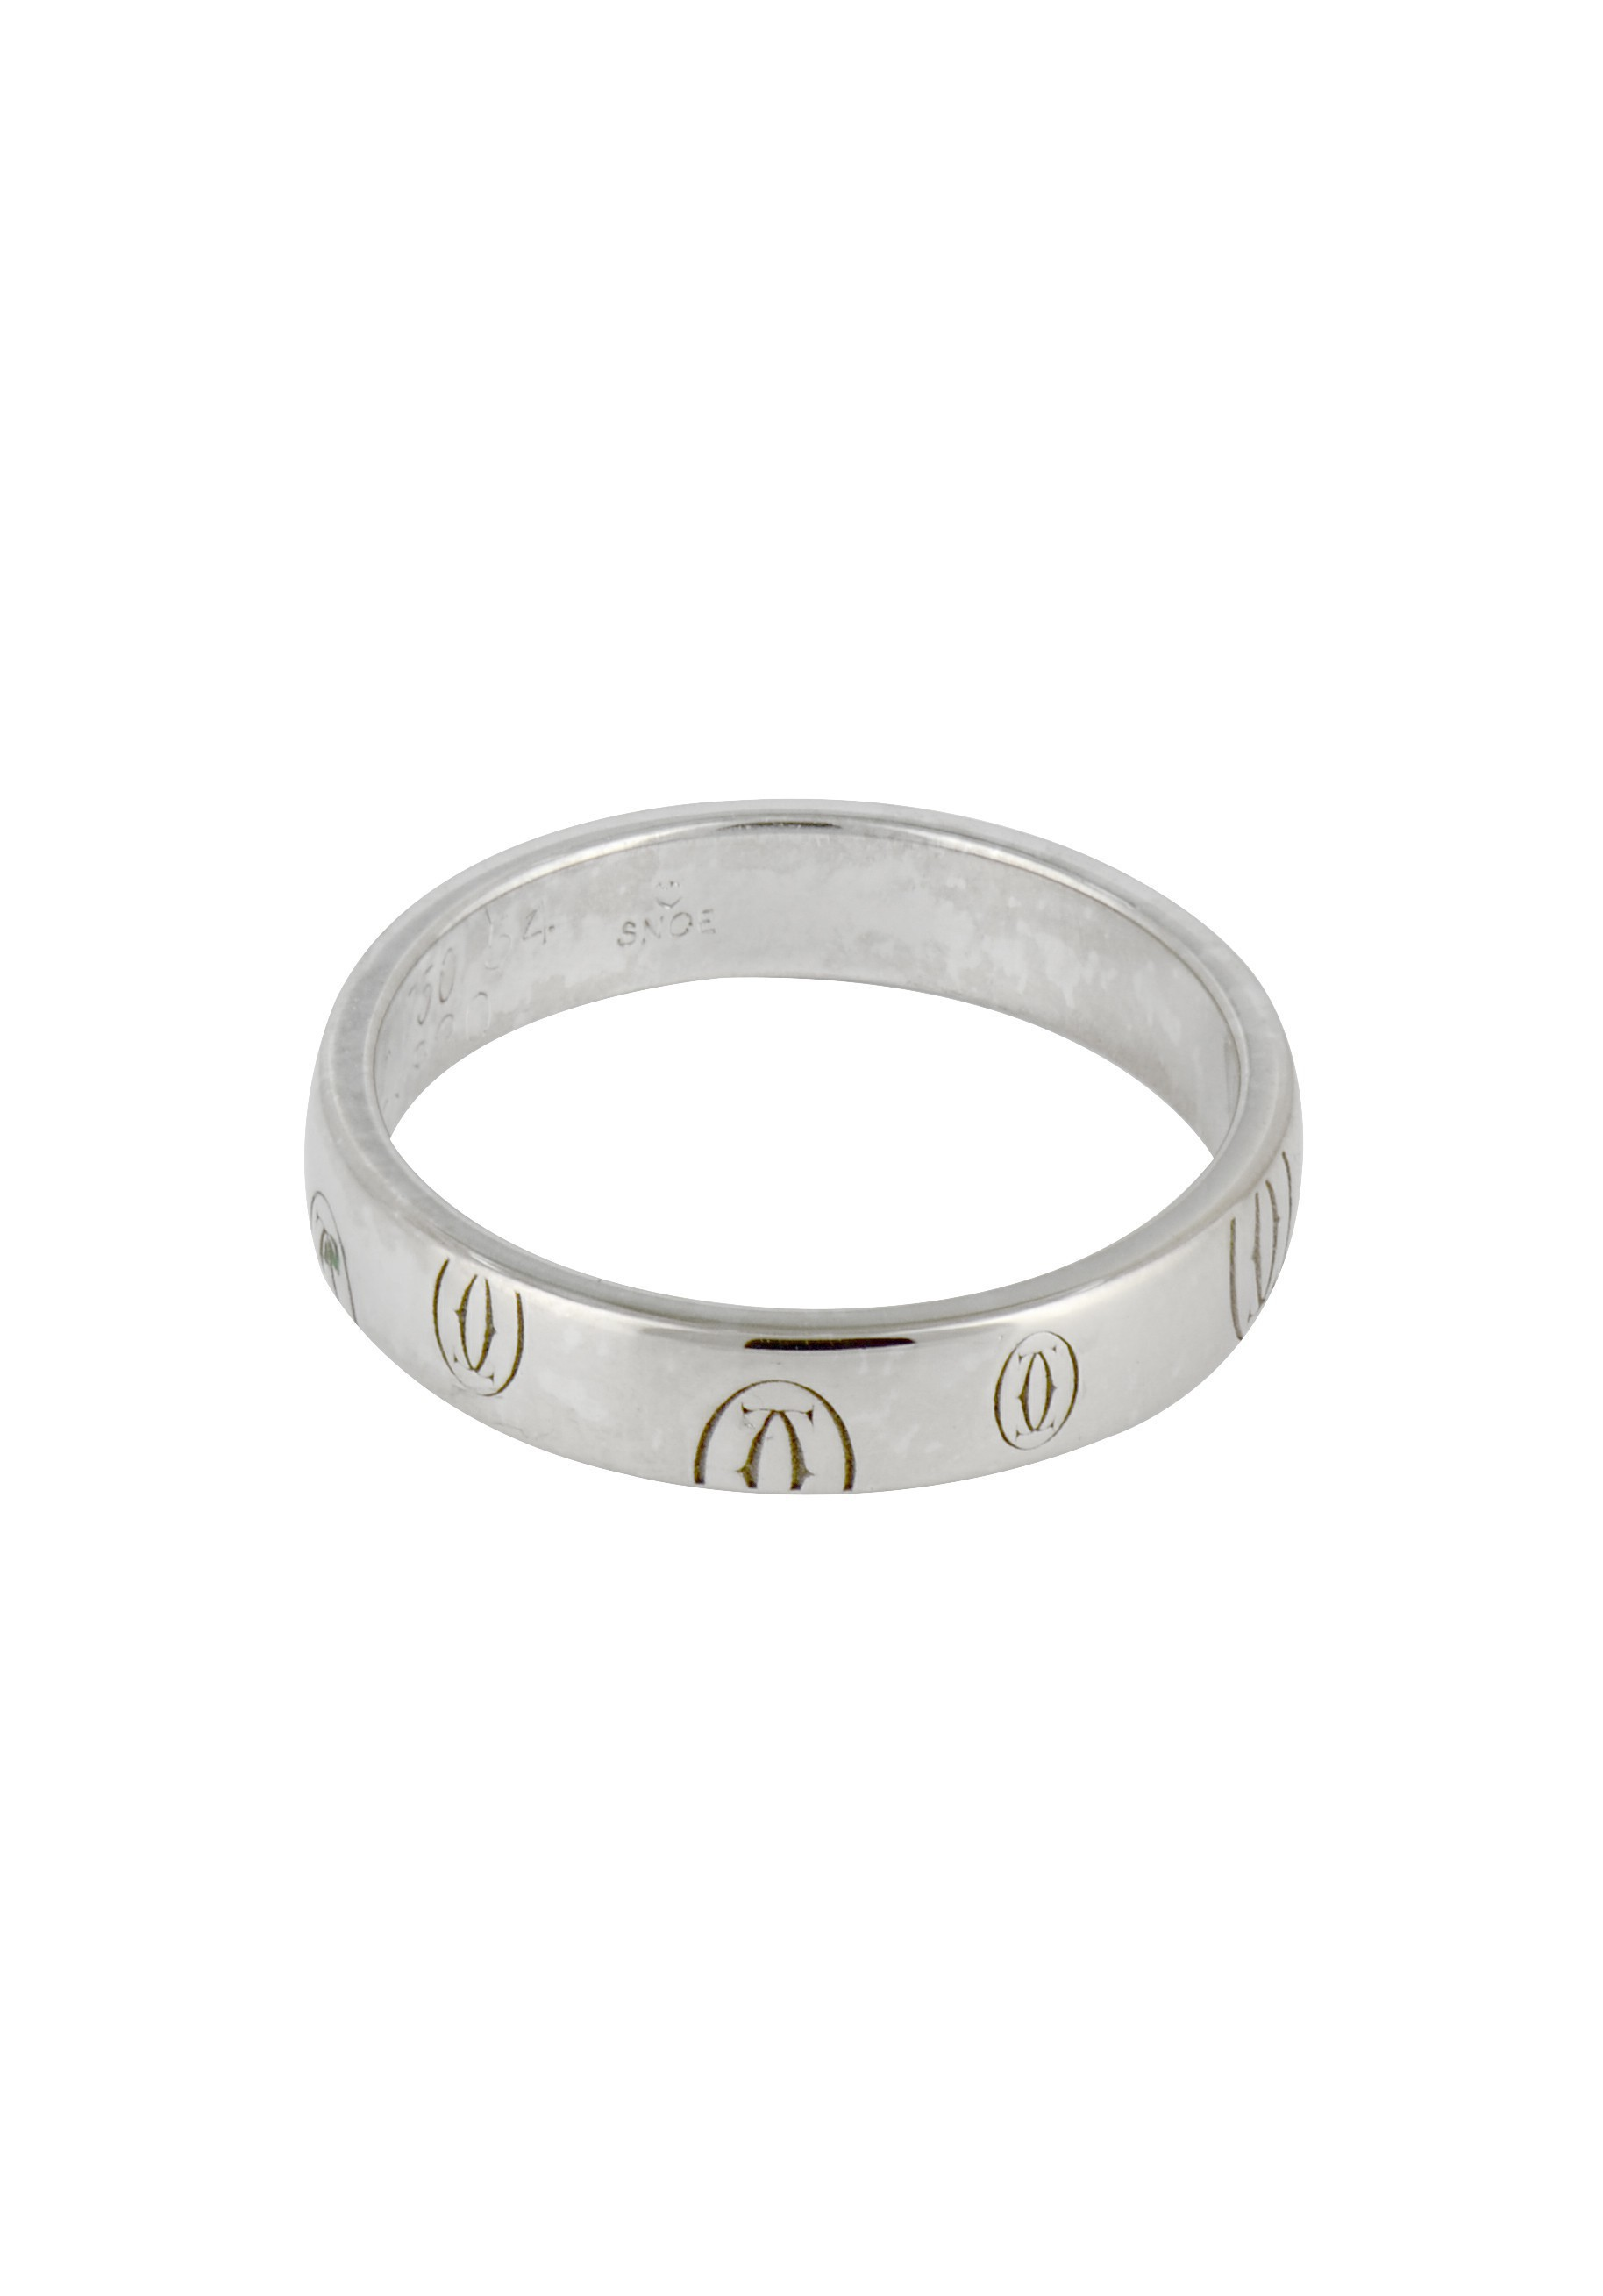 Cartier Logo - Pre-owned Ring Logo CARTIER : Ref B4050900 - Cresus